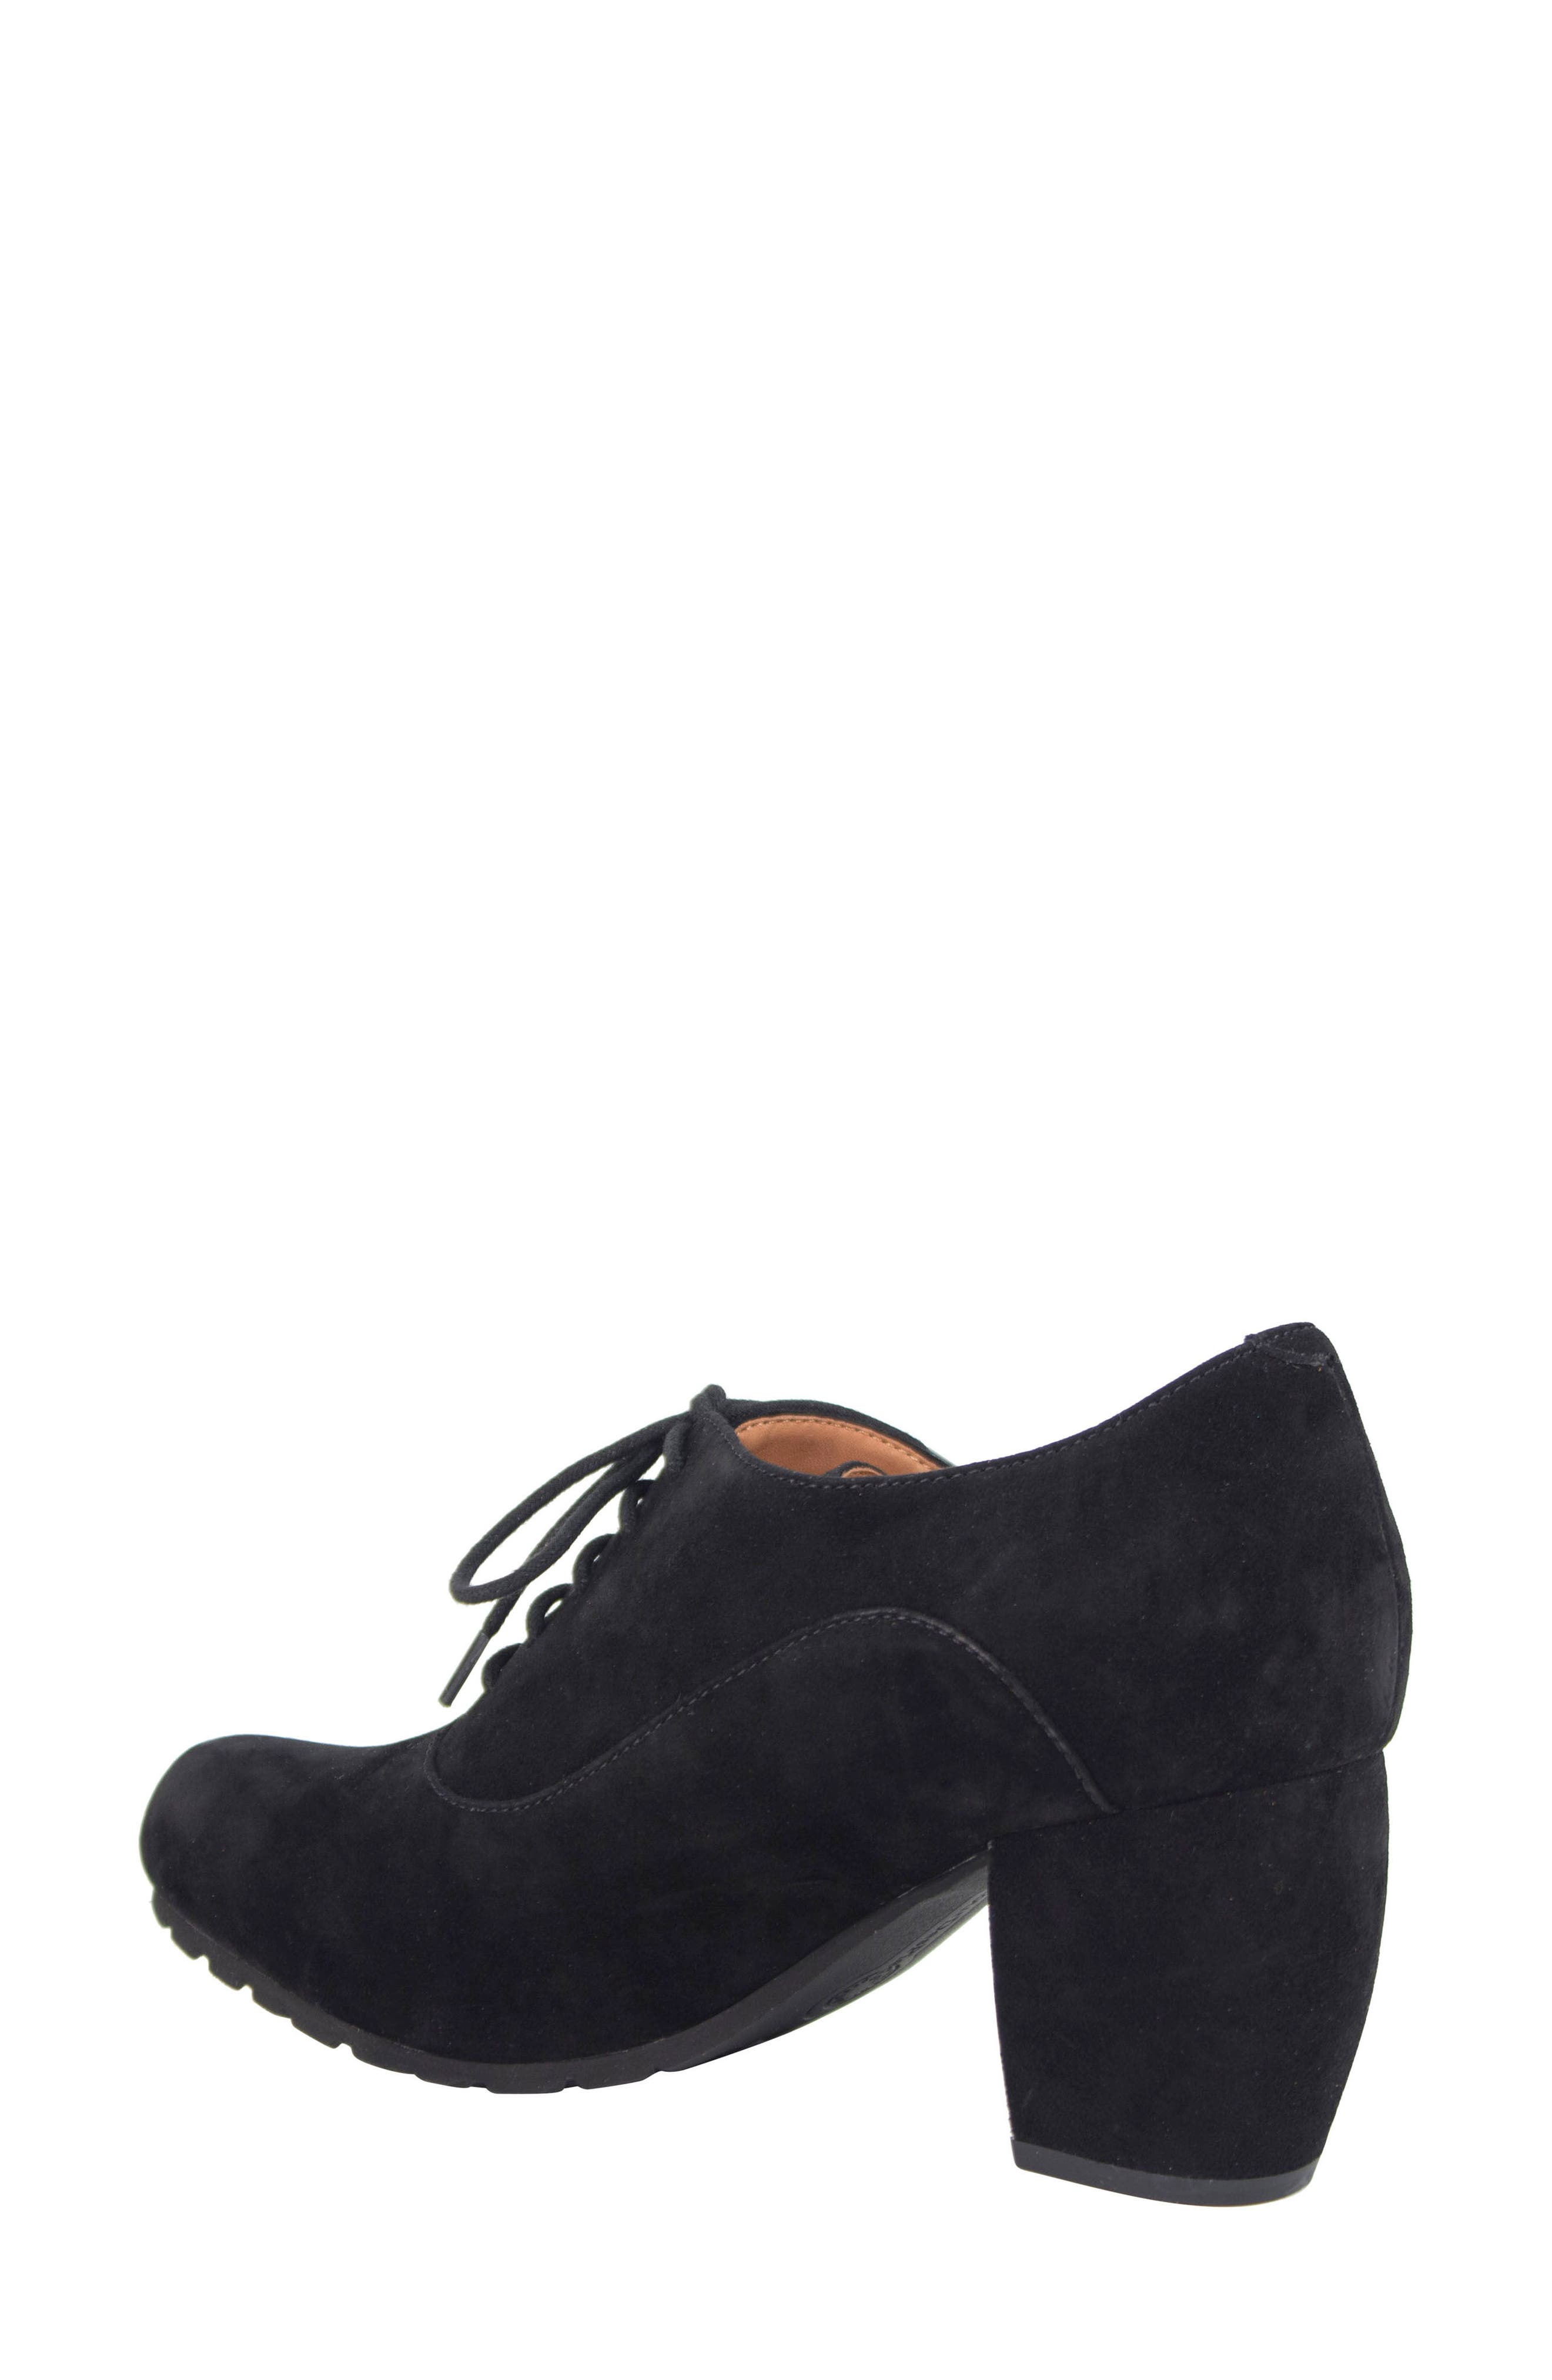 Alternate Image 2  - L'Amour des Pieds Pardoe Lace-Up Bootie (Women)